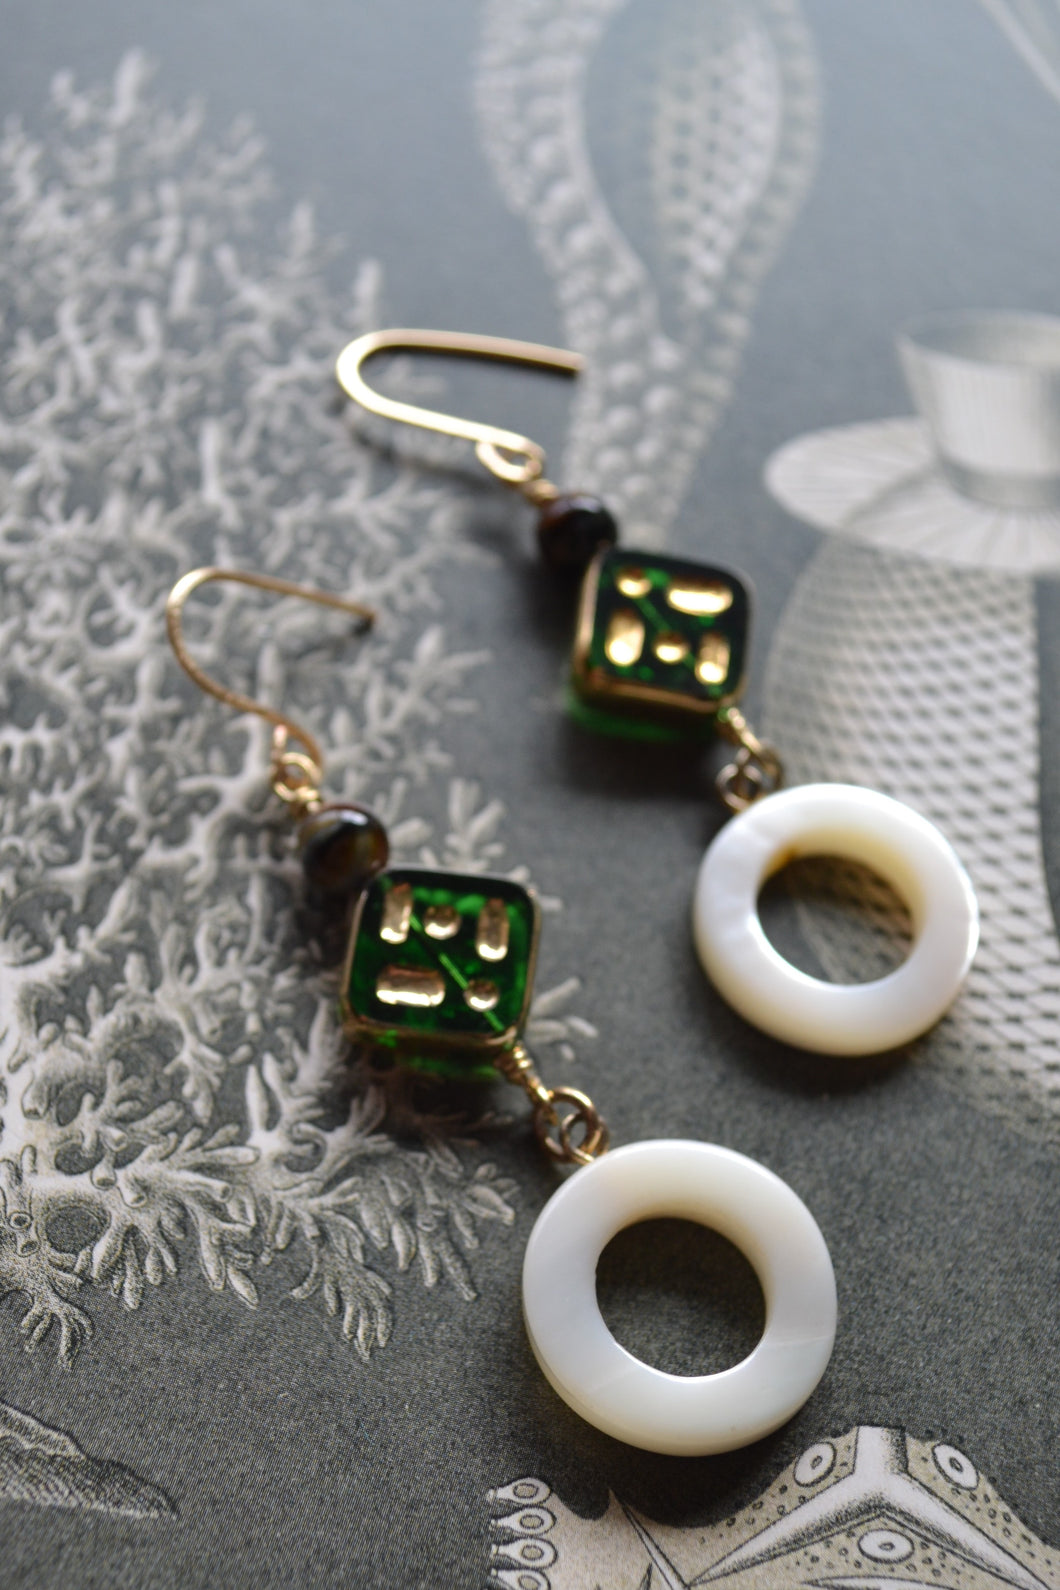 Ring of Pearl & Green Glass Earrings